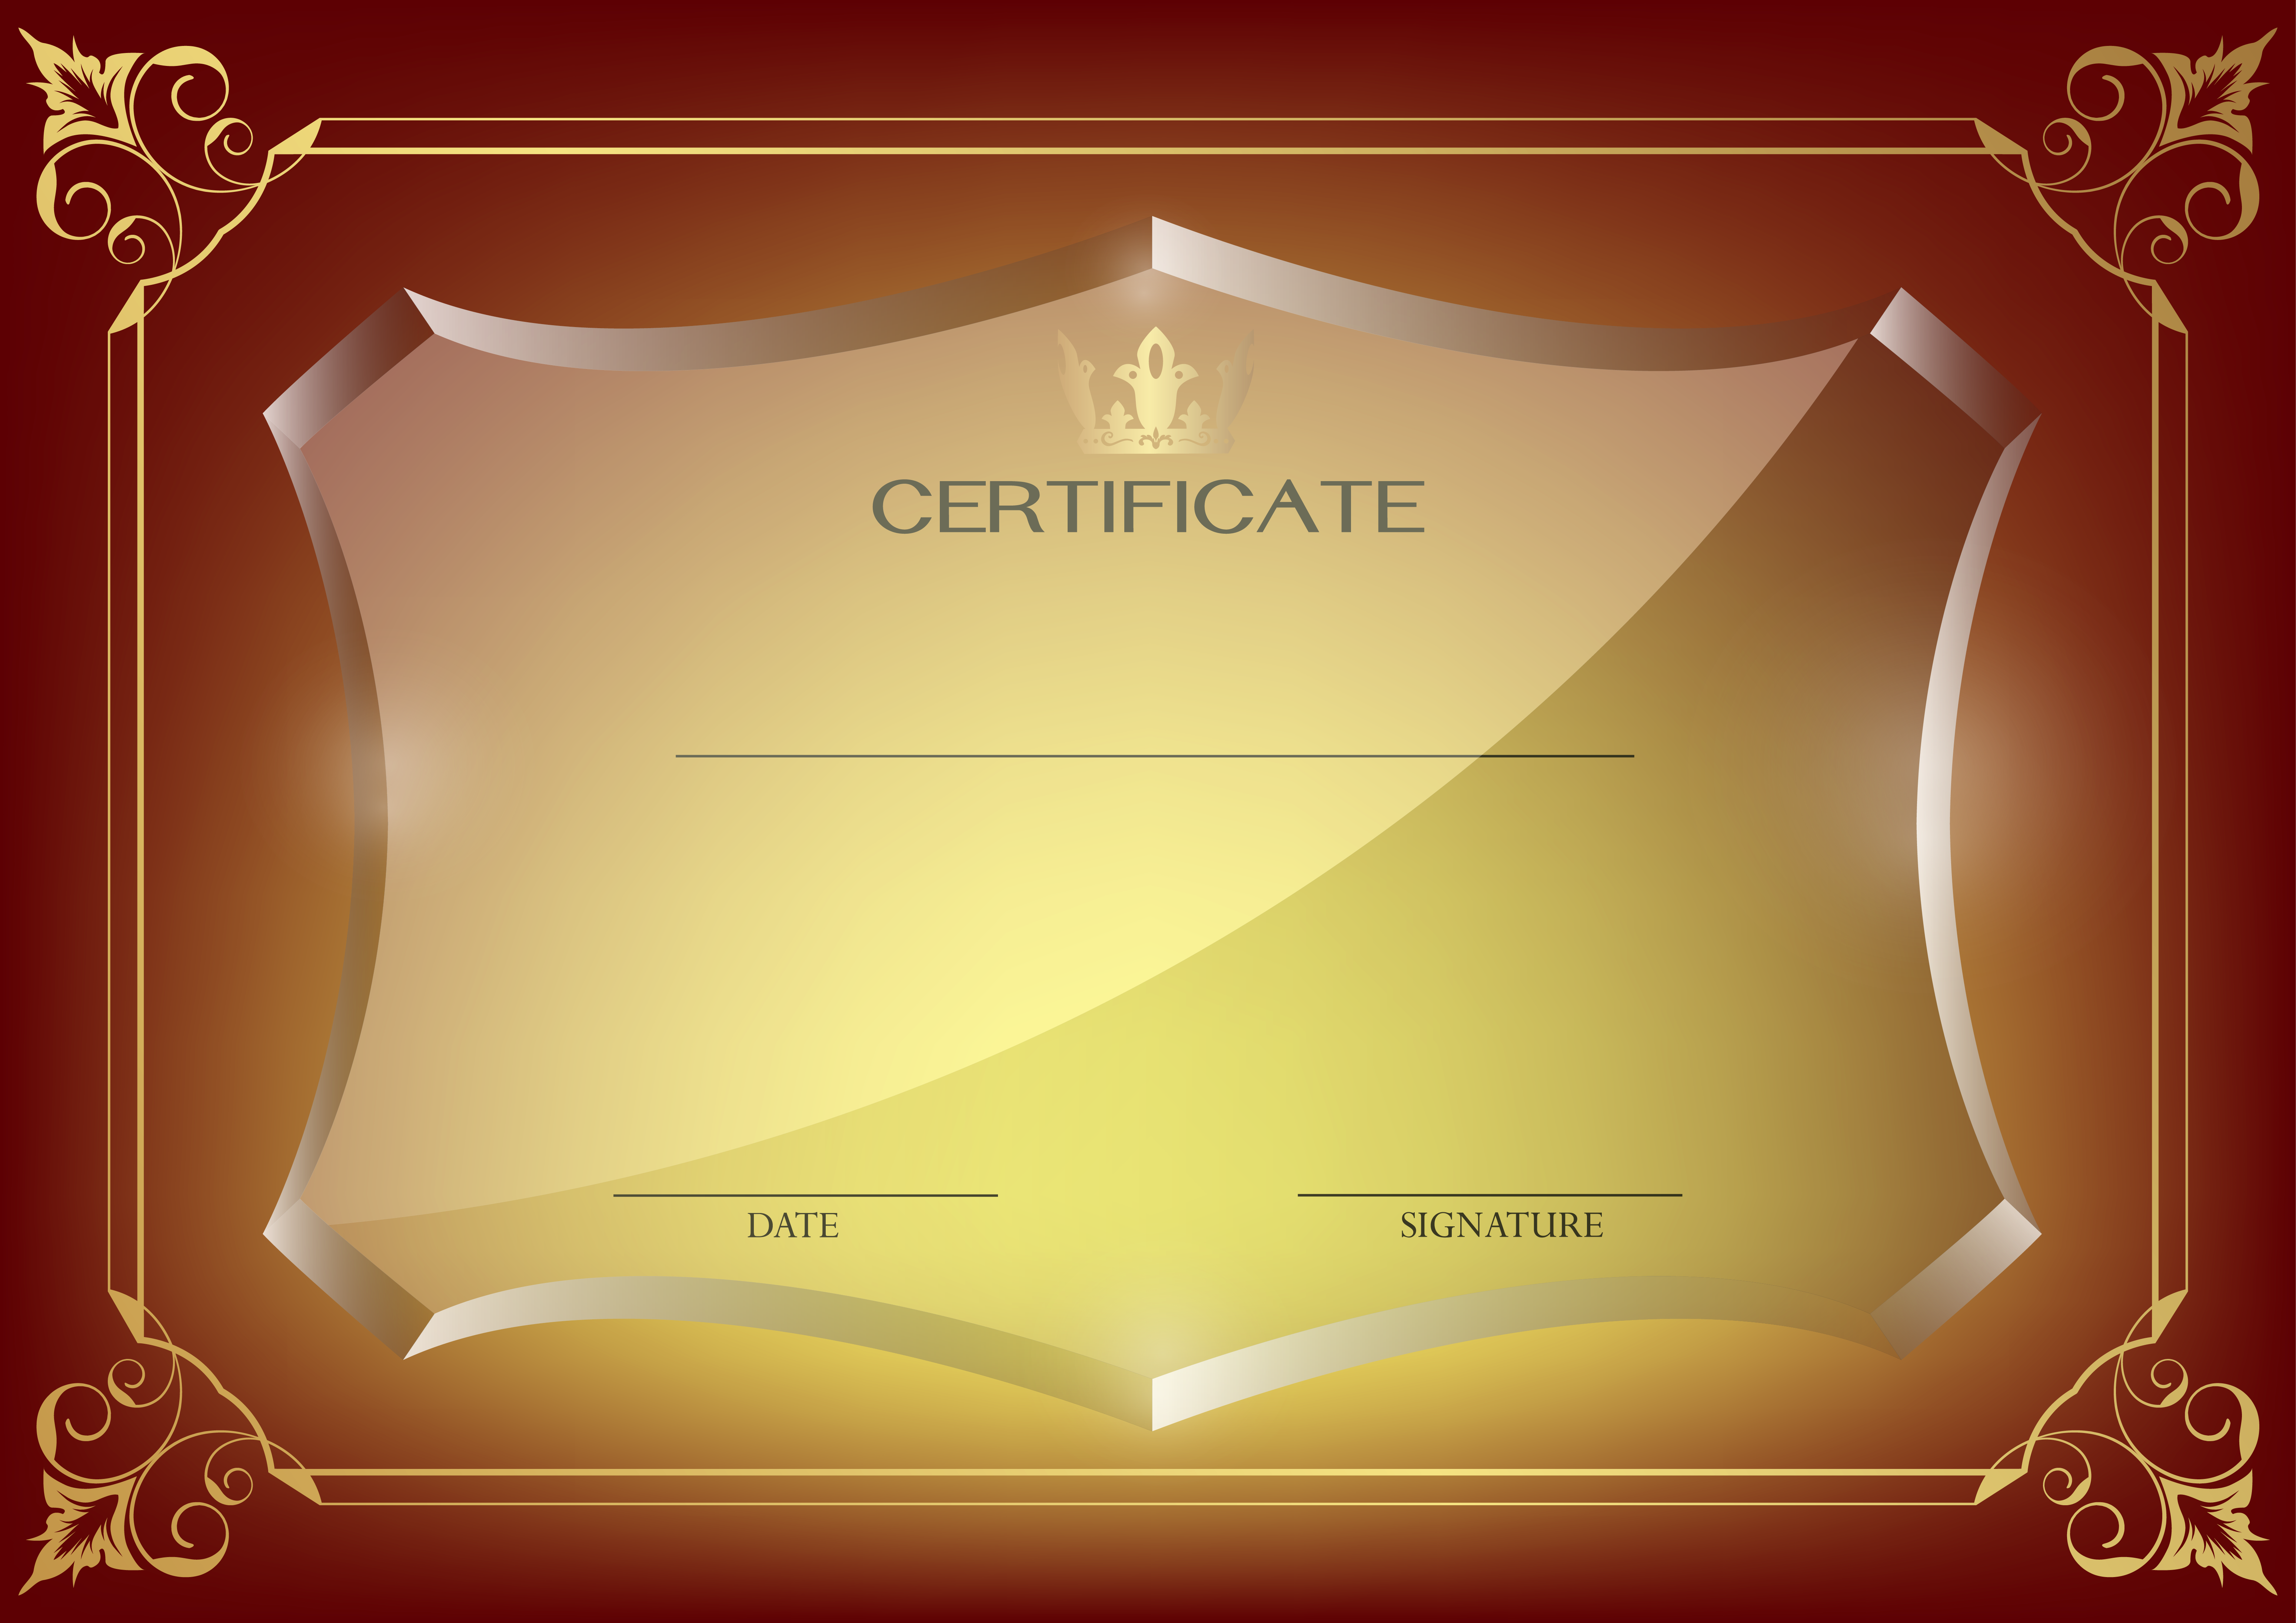 gold certificates templates   Yolar cinetonic co gold certificates templates